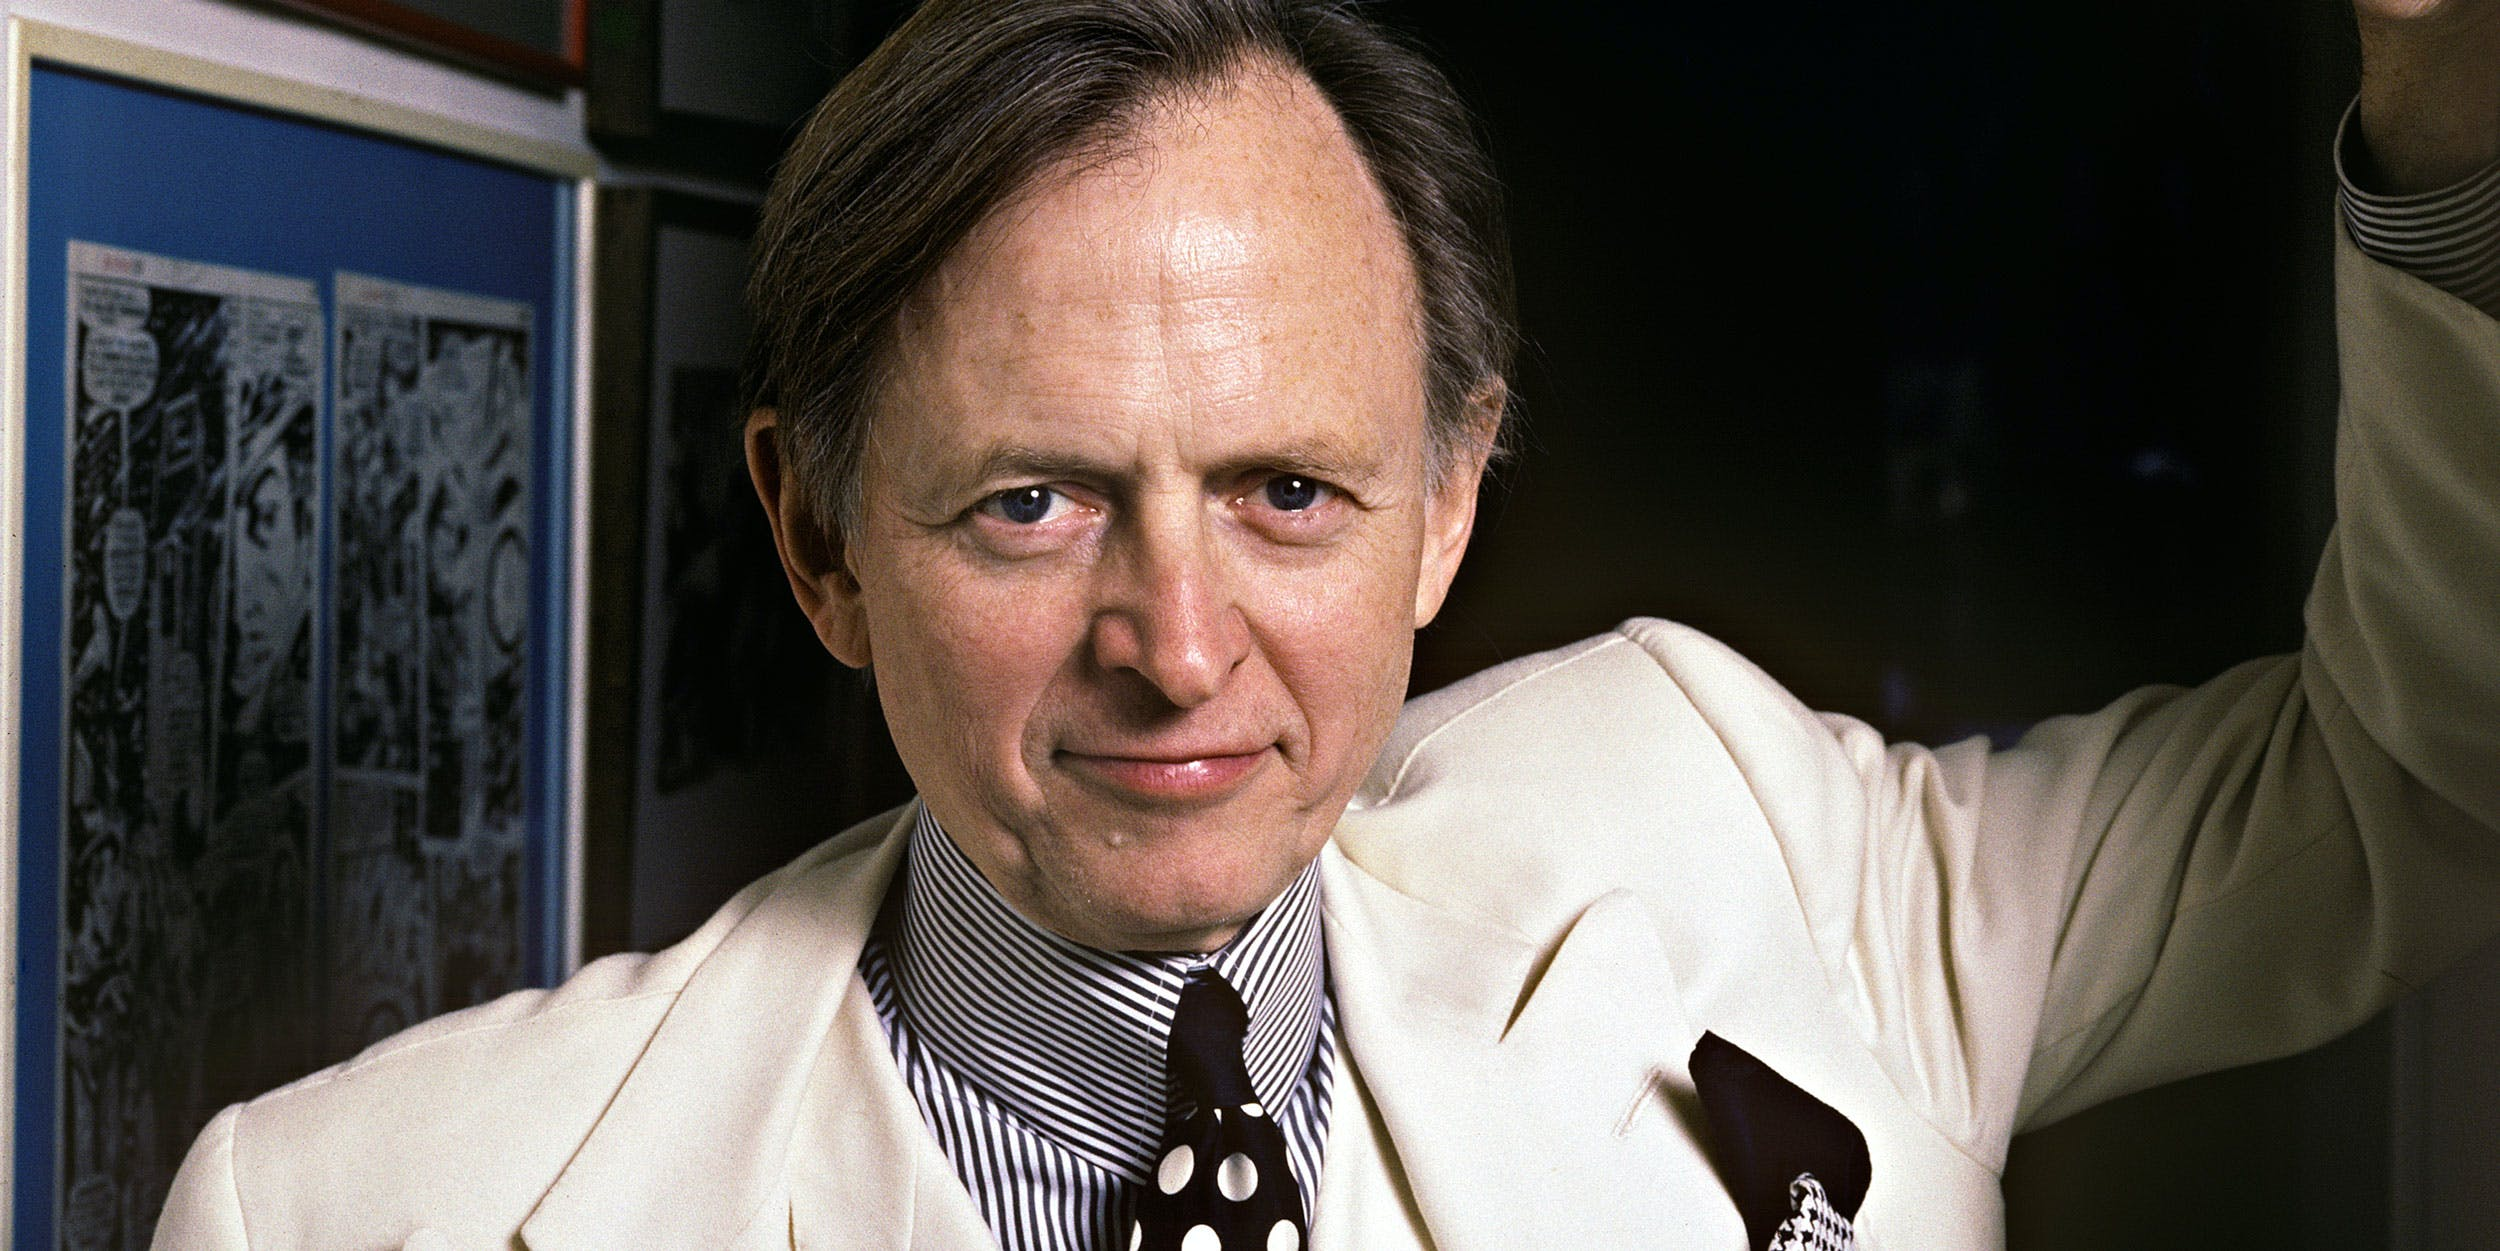 Tom Wolfe, Non-Fiction Luminary and Counterculture Icon, Dies at 88